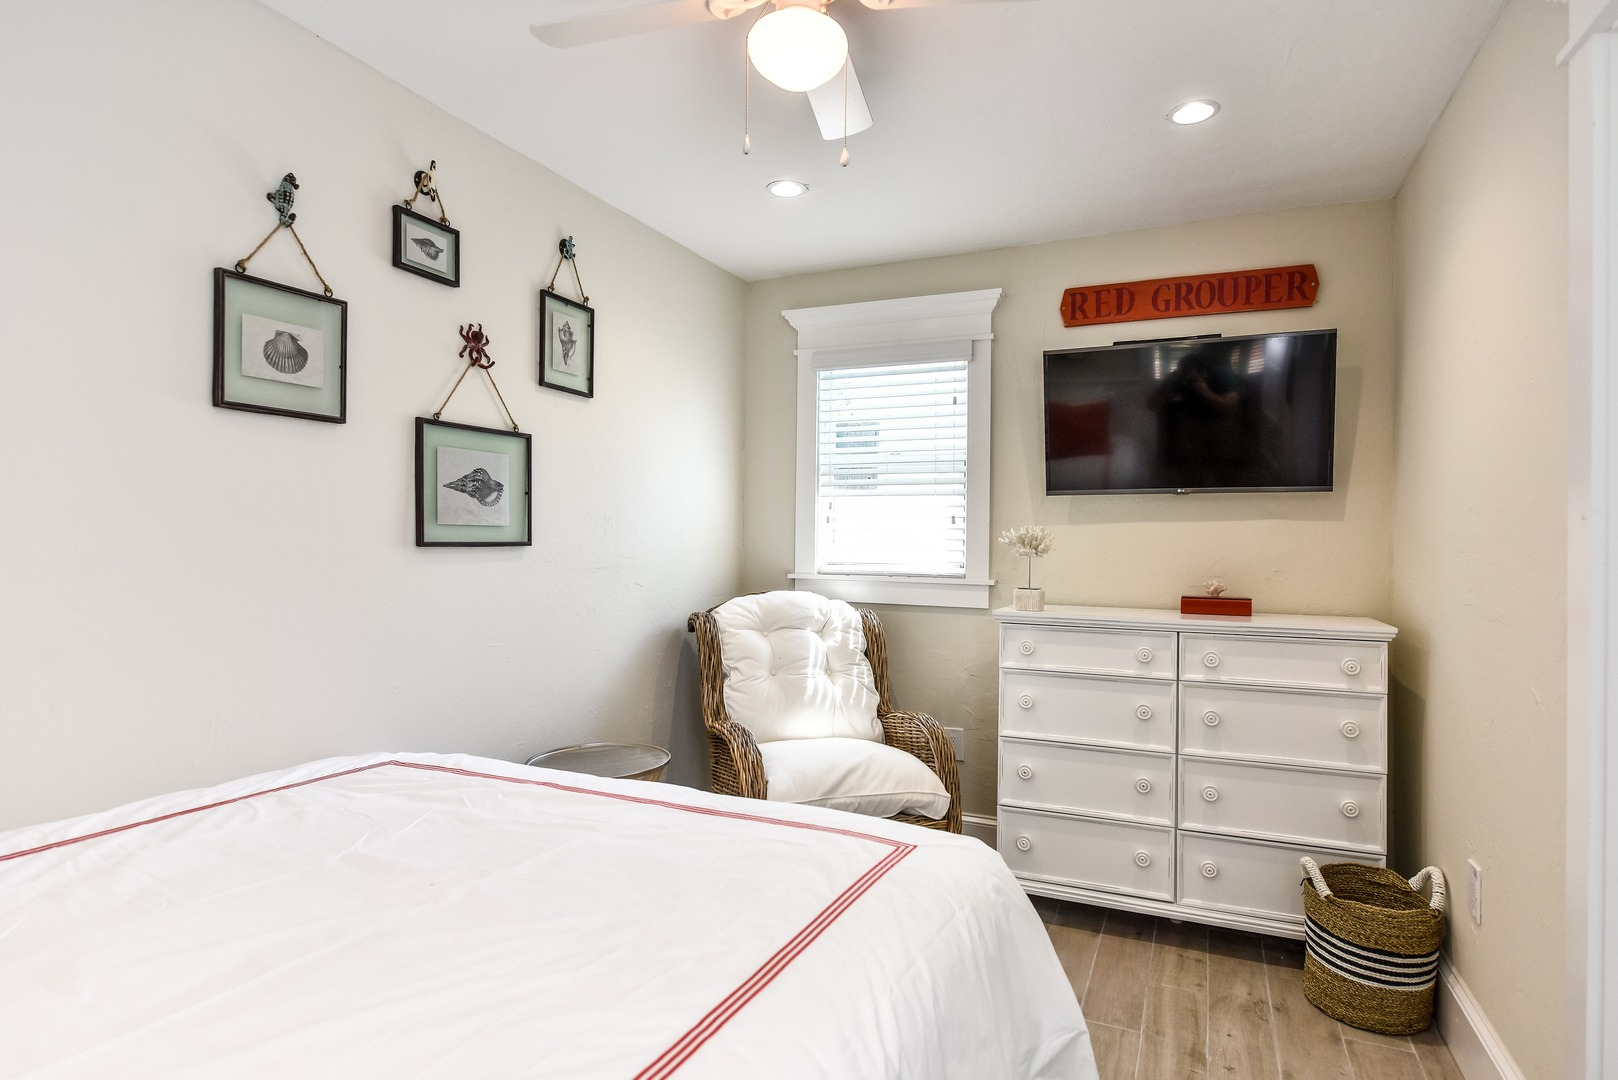 HDTV in your Bedroom with Dresser and Closet Storage